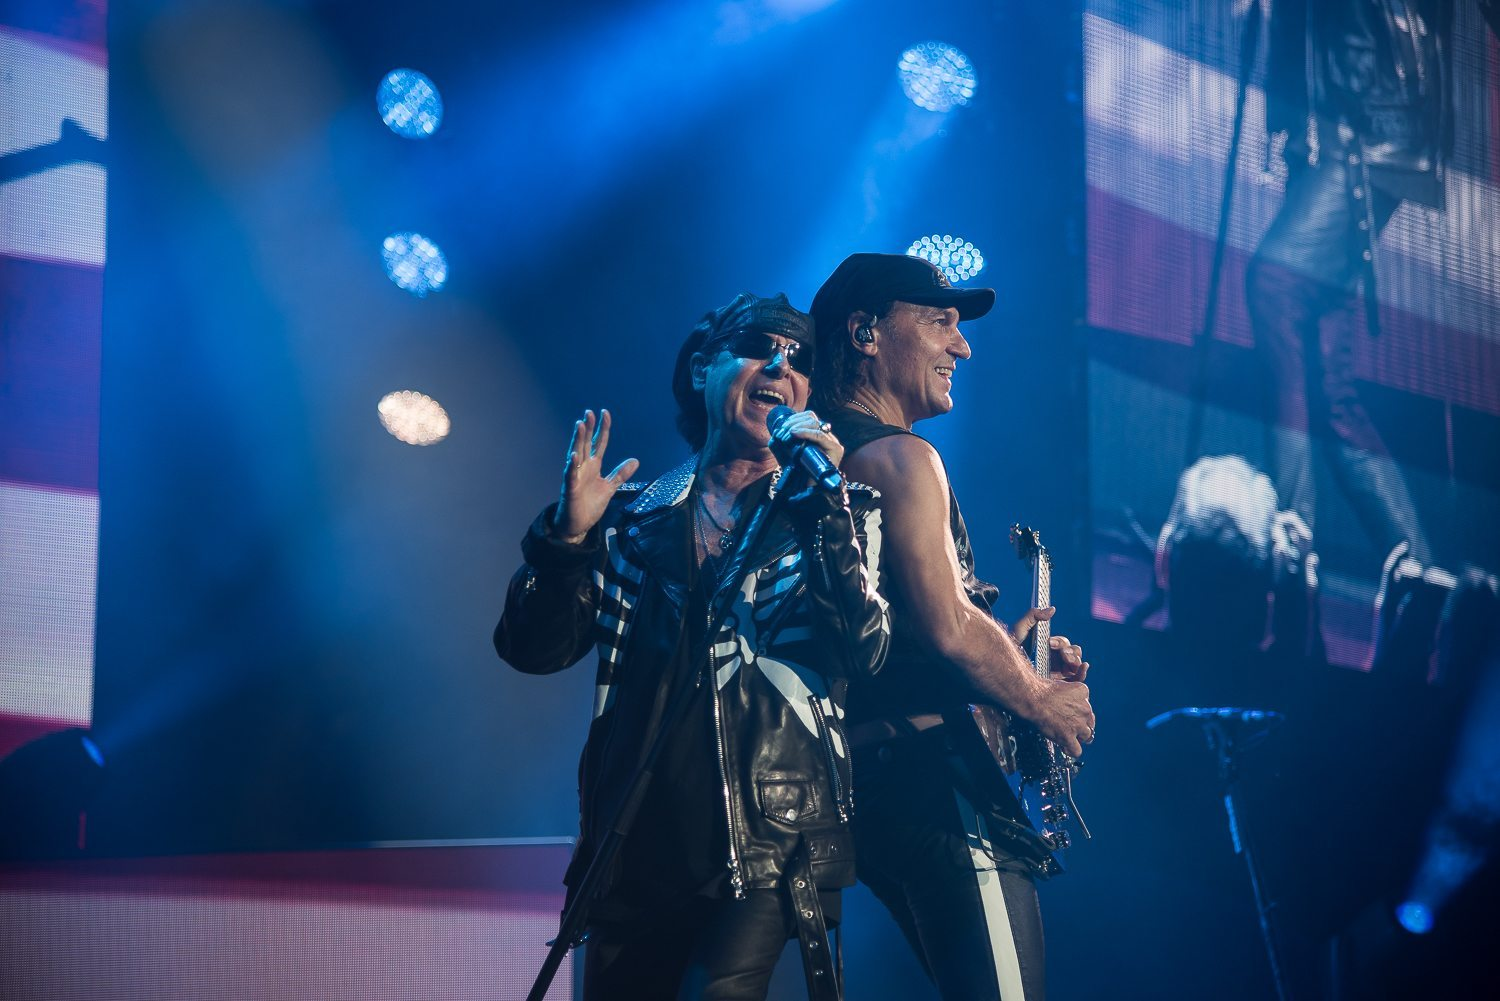 Scorpions played the Oracle Arena in Oakland